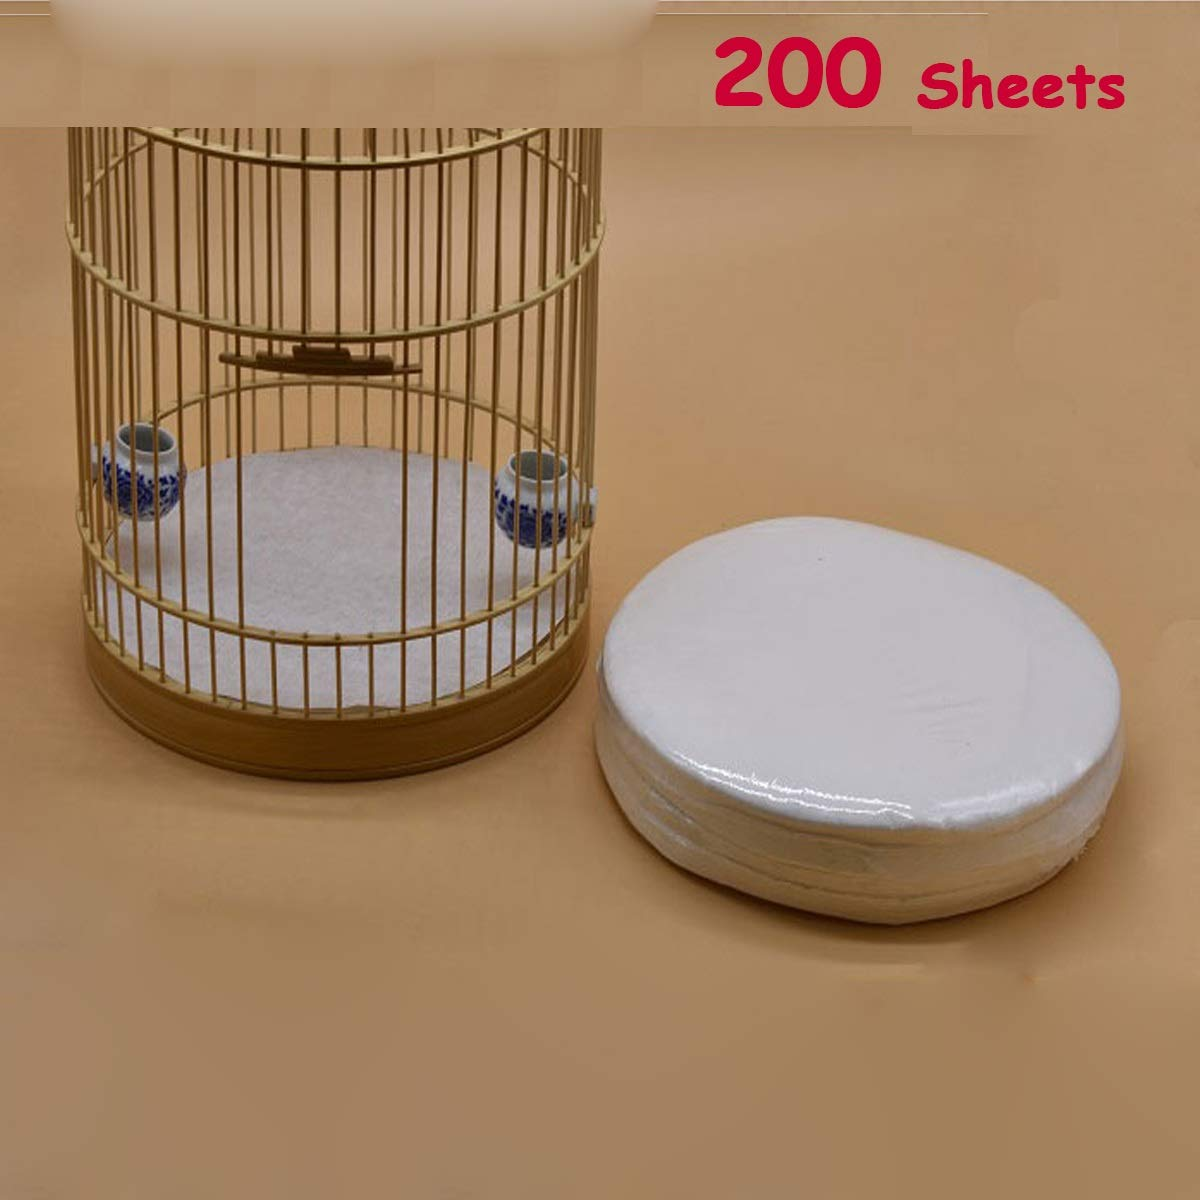 Bonaweite Disposable Non-Woven Bird Cage Liners Papers, Parrot Pet Cages Cushion Pad Mat Accessories, Round-200 Sheets by Bonaweite